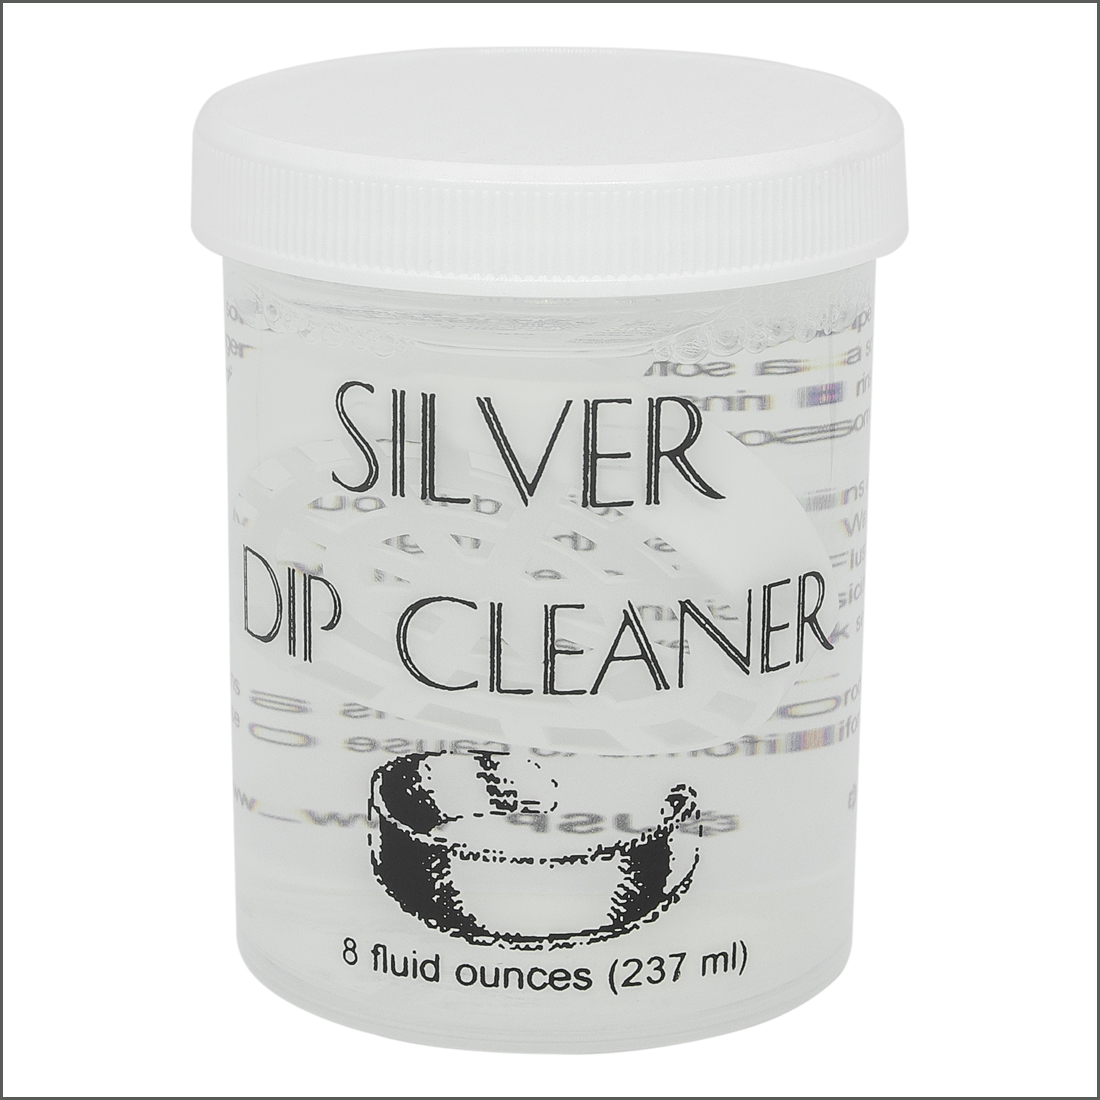 SILVER DIP CLEANER